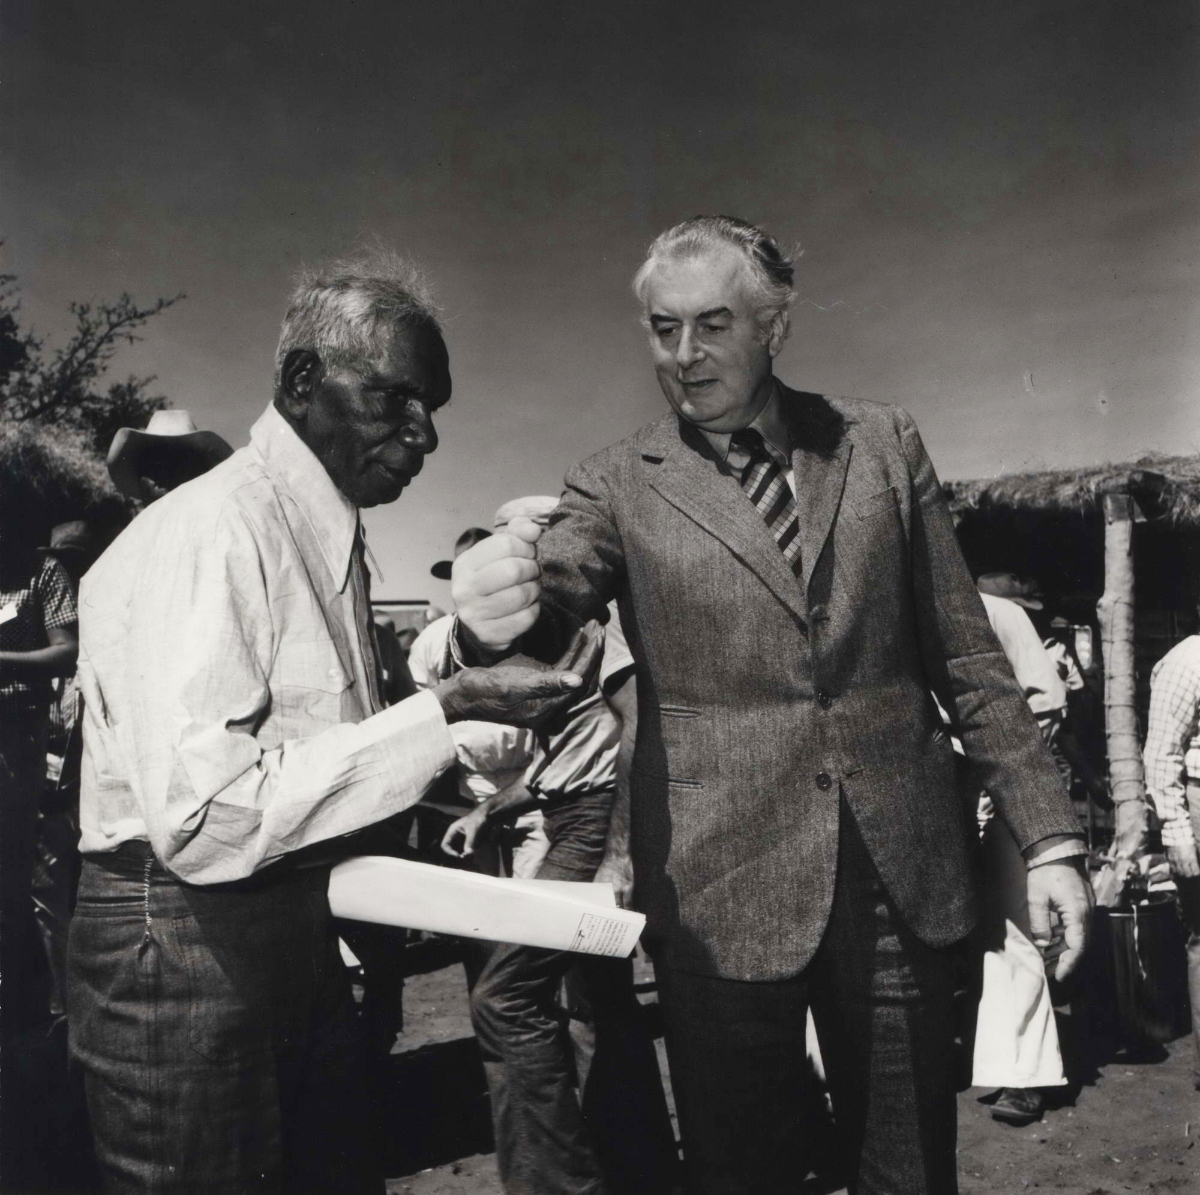 Gough Whitlam pouring soil into the hands of traditional owner Vincent Lingiari